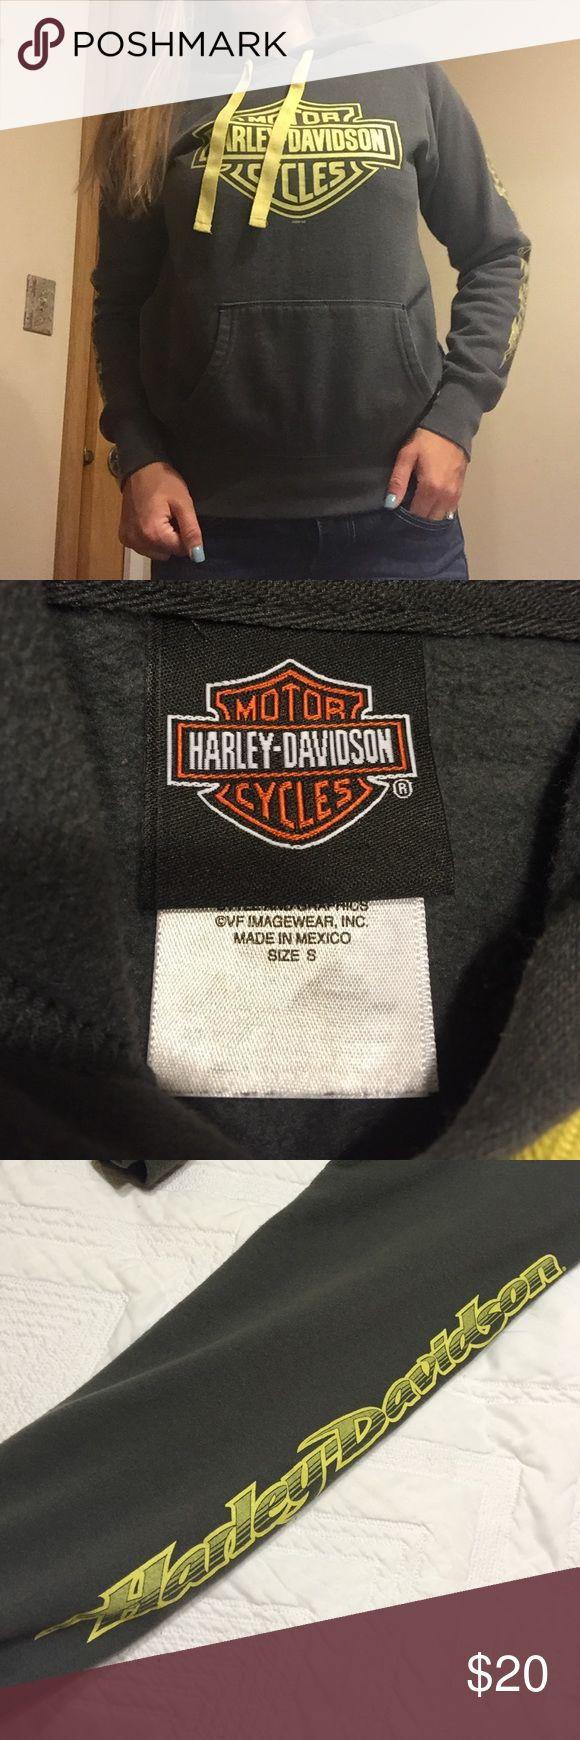 Women's Harley Davidson sweatshirt Women's Small fitted Harley Davidson grey and yellow sweatshirt. From the La Crosse Area Harley Davidson in Onalaska WI. Picture 3 is what is printed down both sleeves and picture 4 is back of sweatshirt Harley-Davidson Tops Sweatshirts & Hoodies